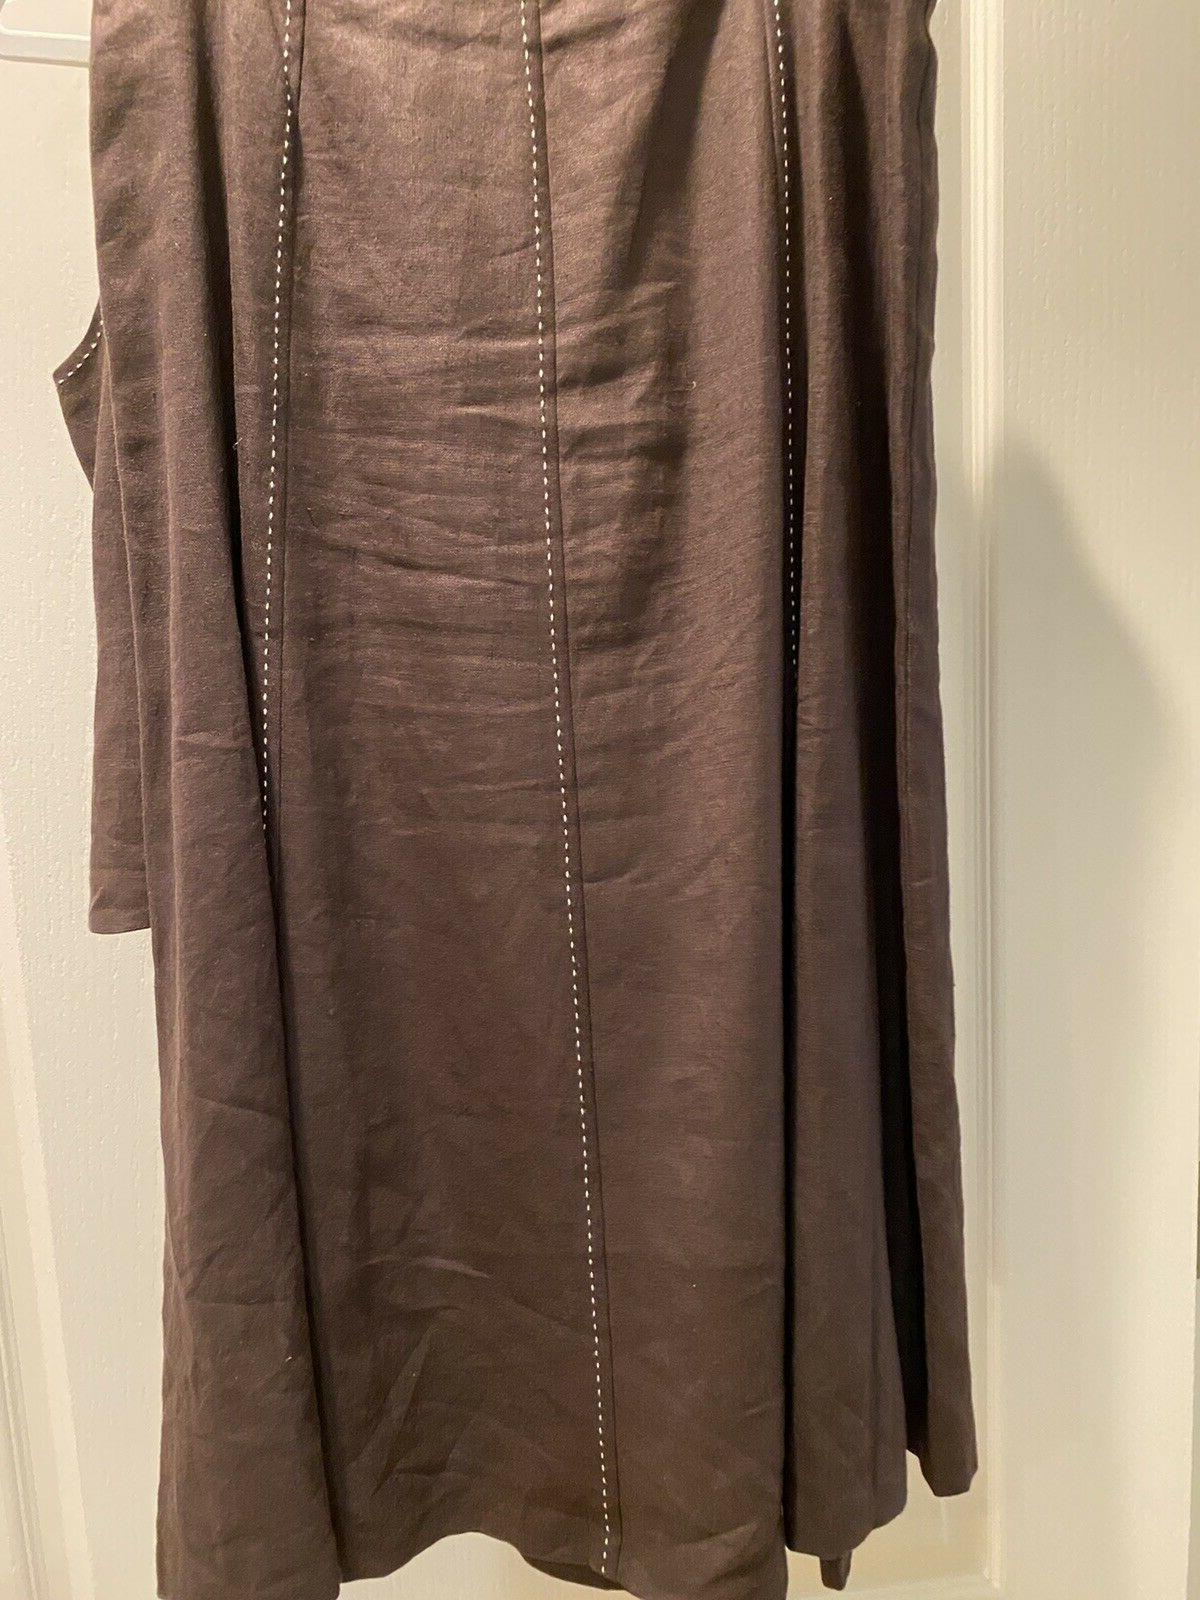 NWT, Talbots 2 sleeveless brown with white top-stitch,